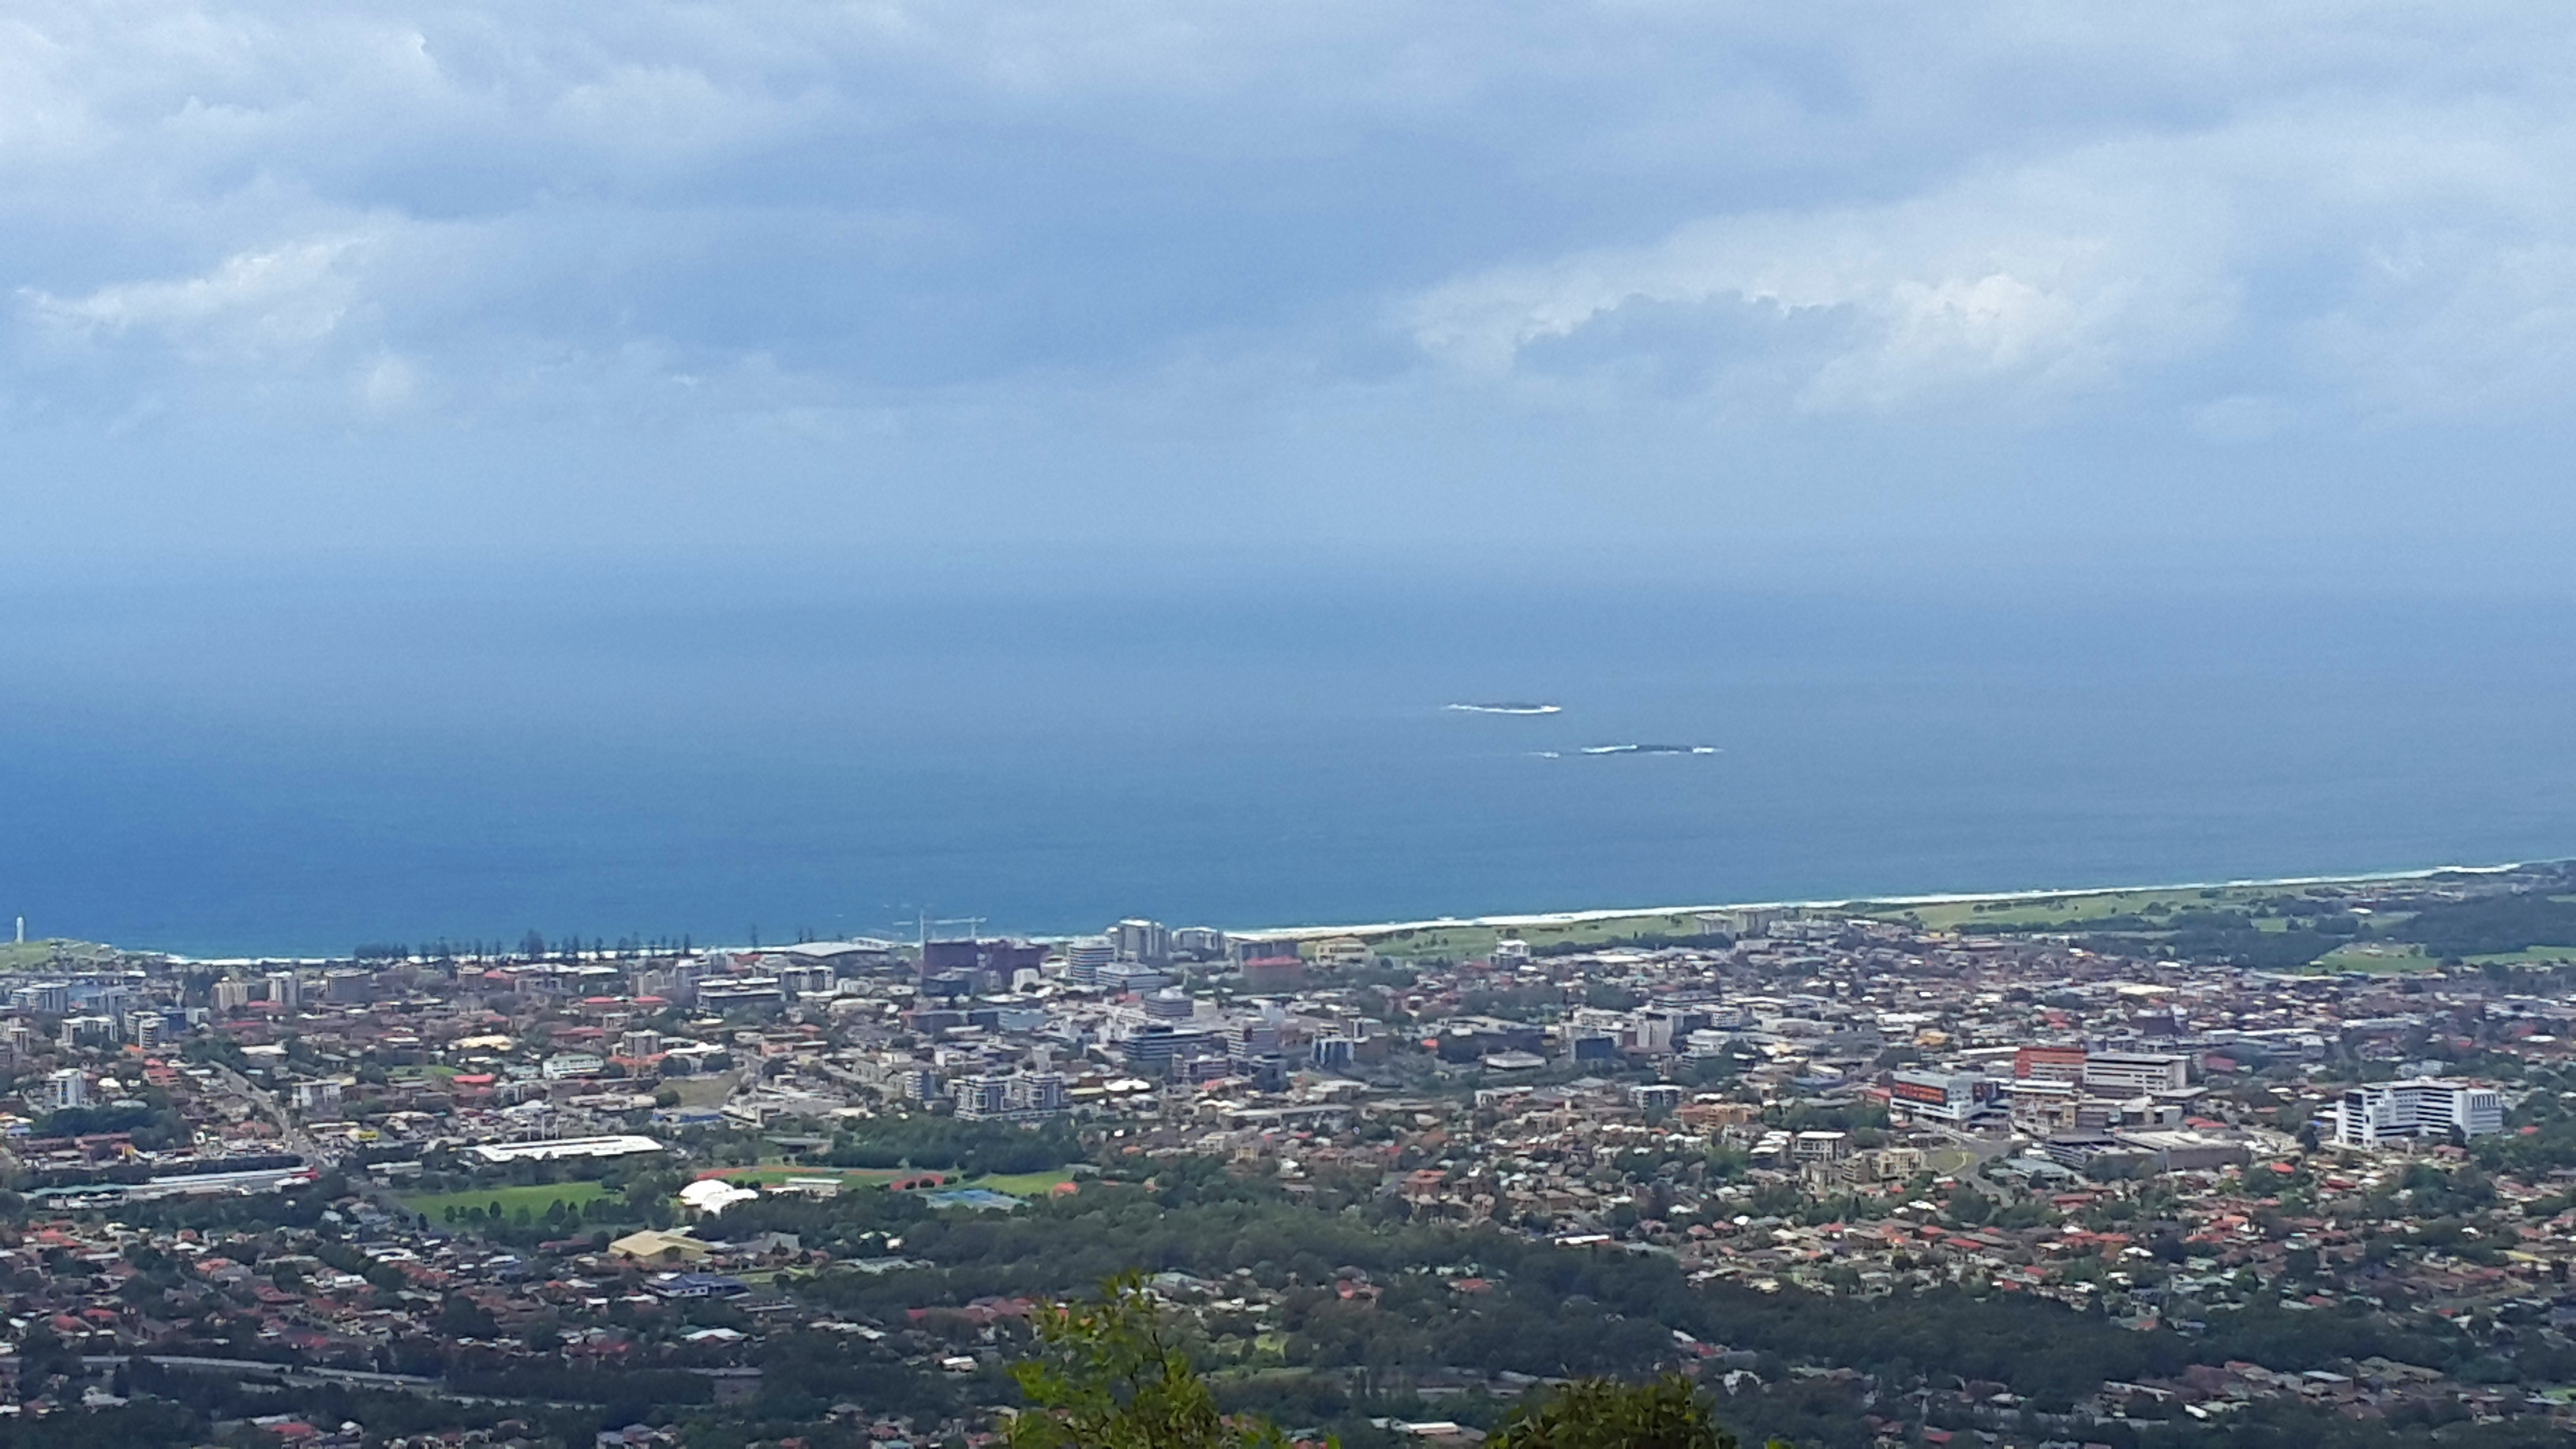 mount keira lookout - photo #13